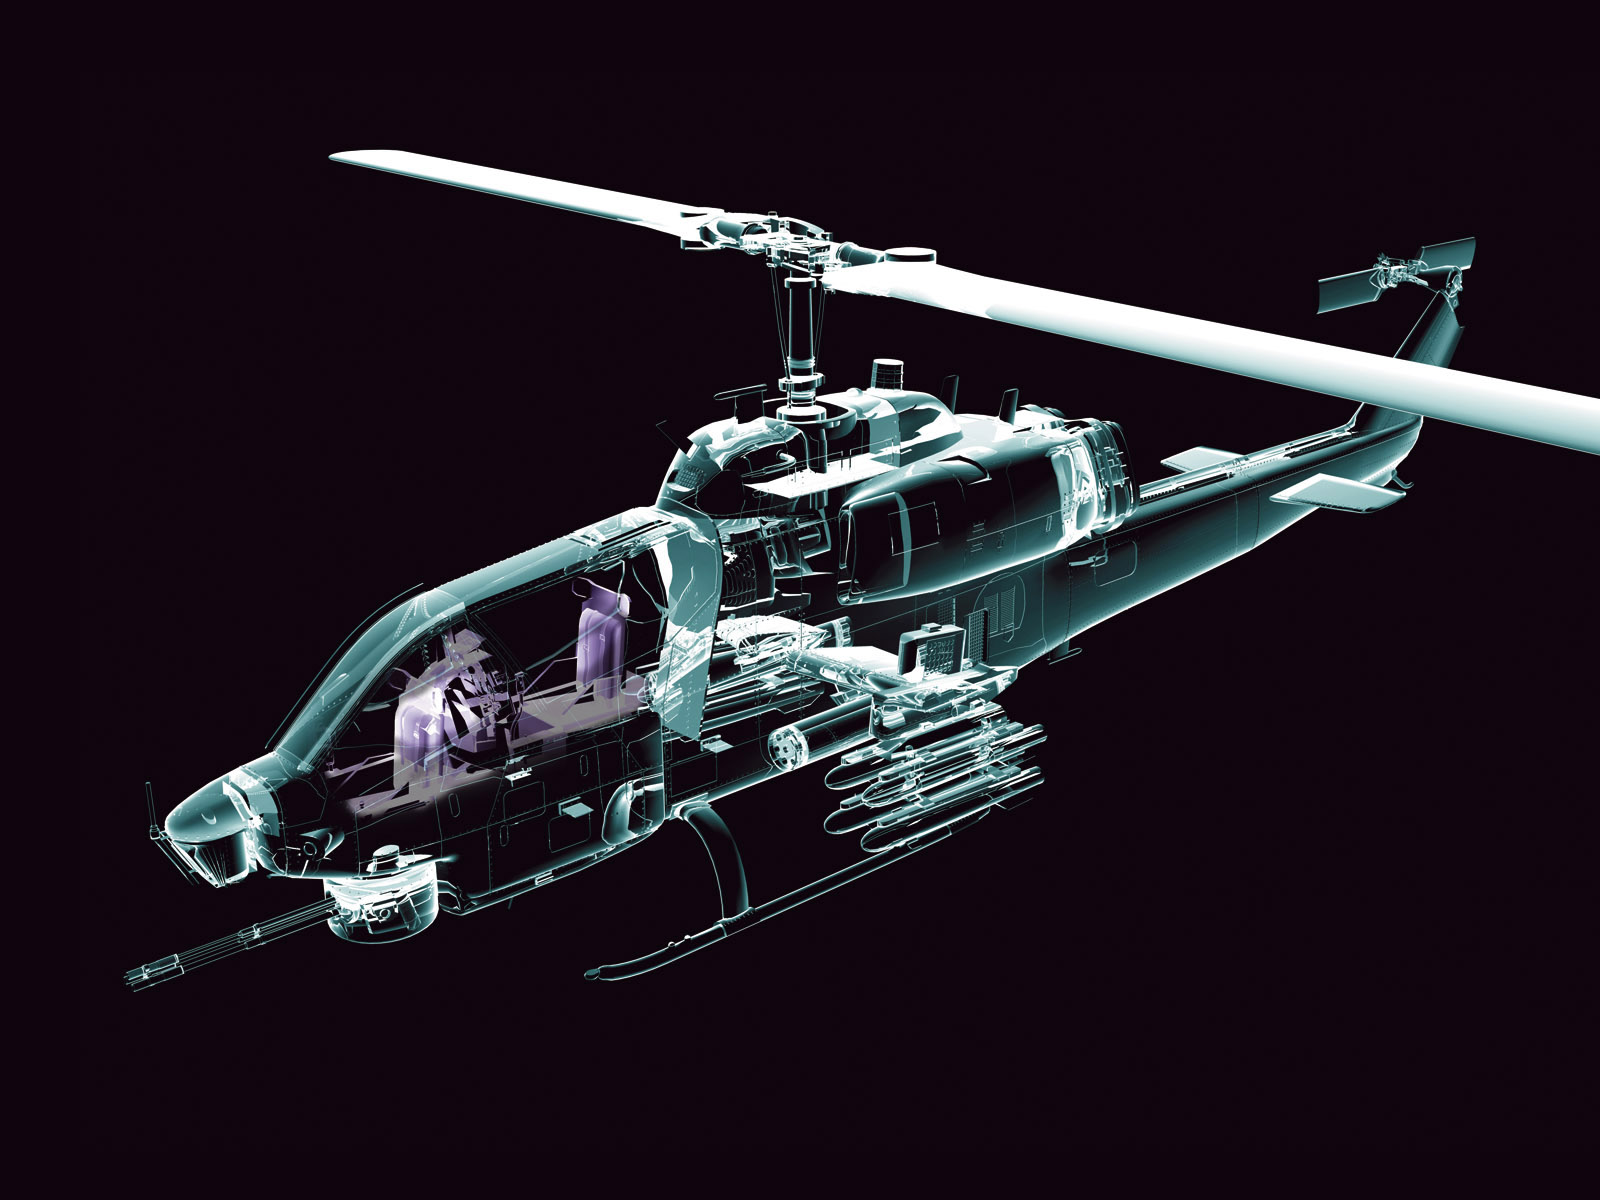 1600x1200 Neon Helicopter desktop wallpapers and stock photos